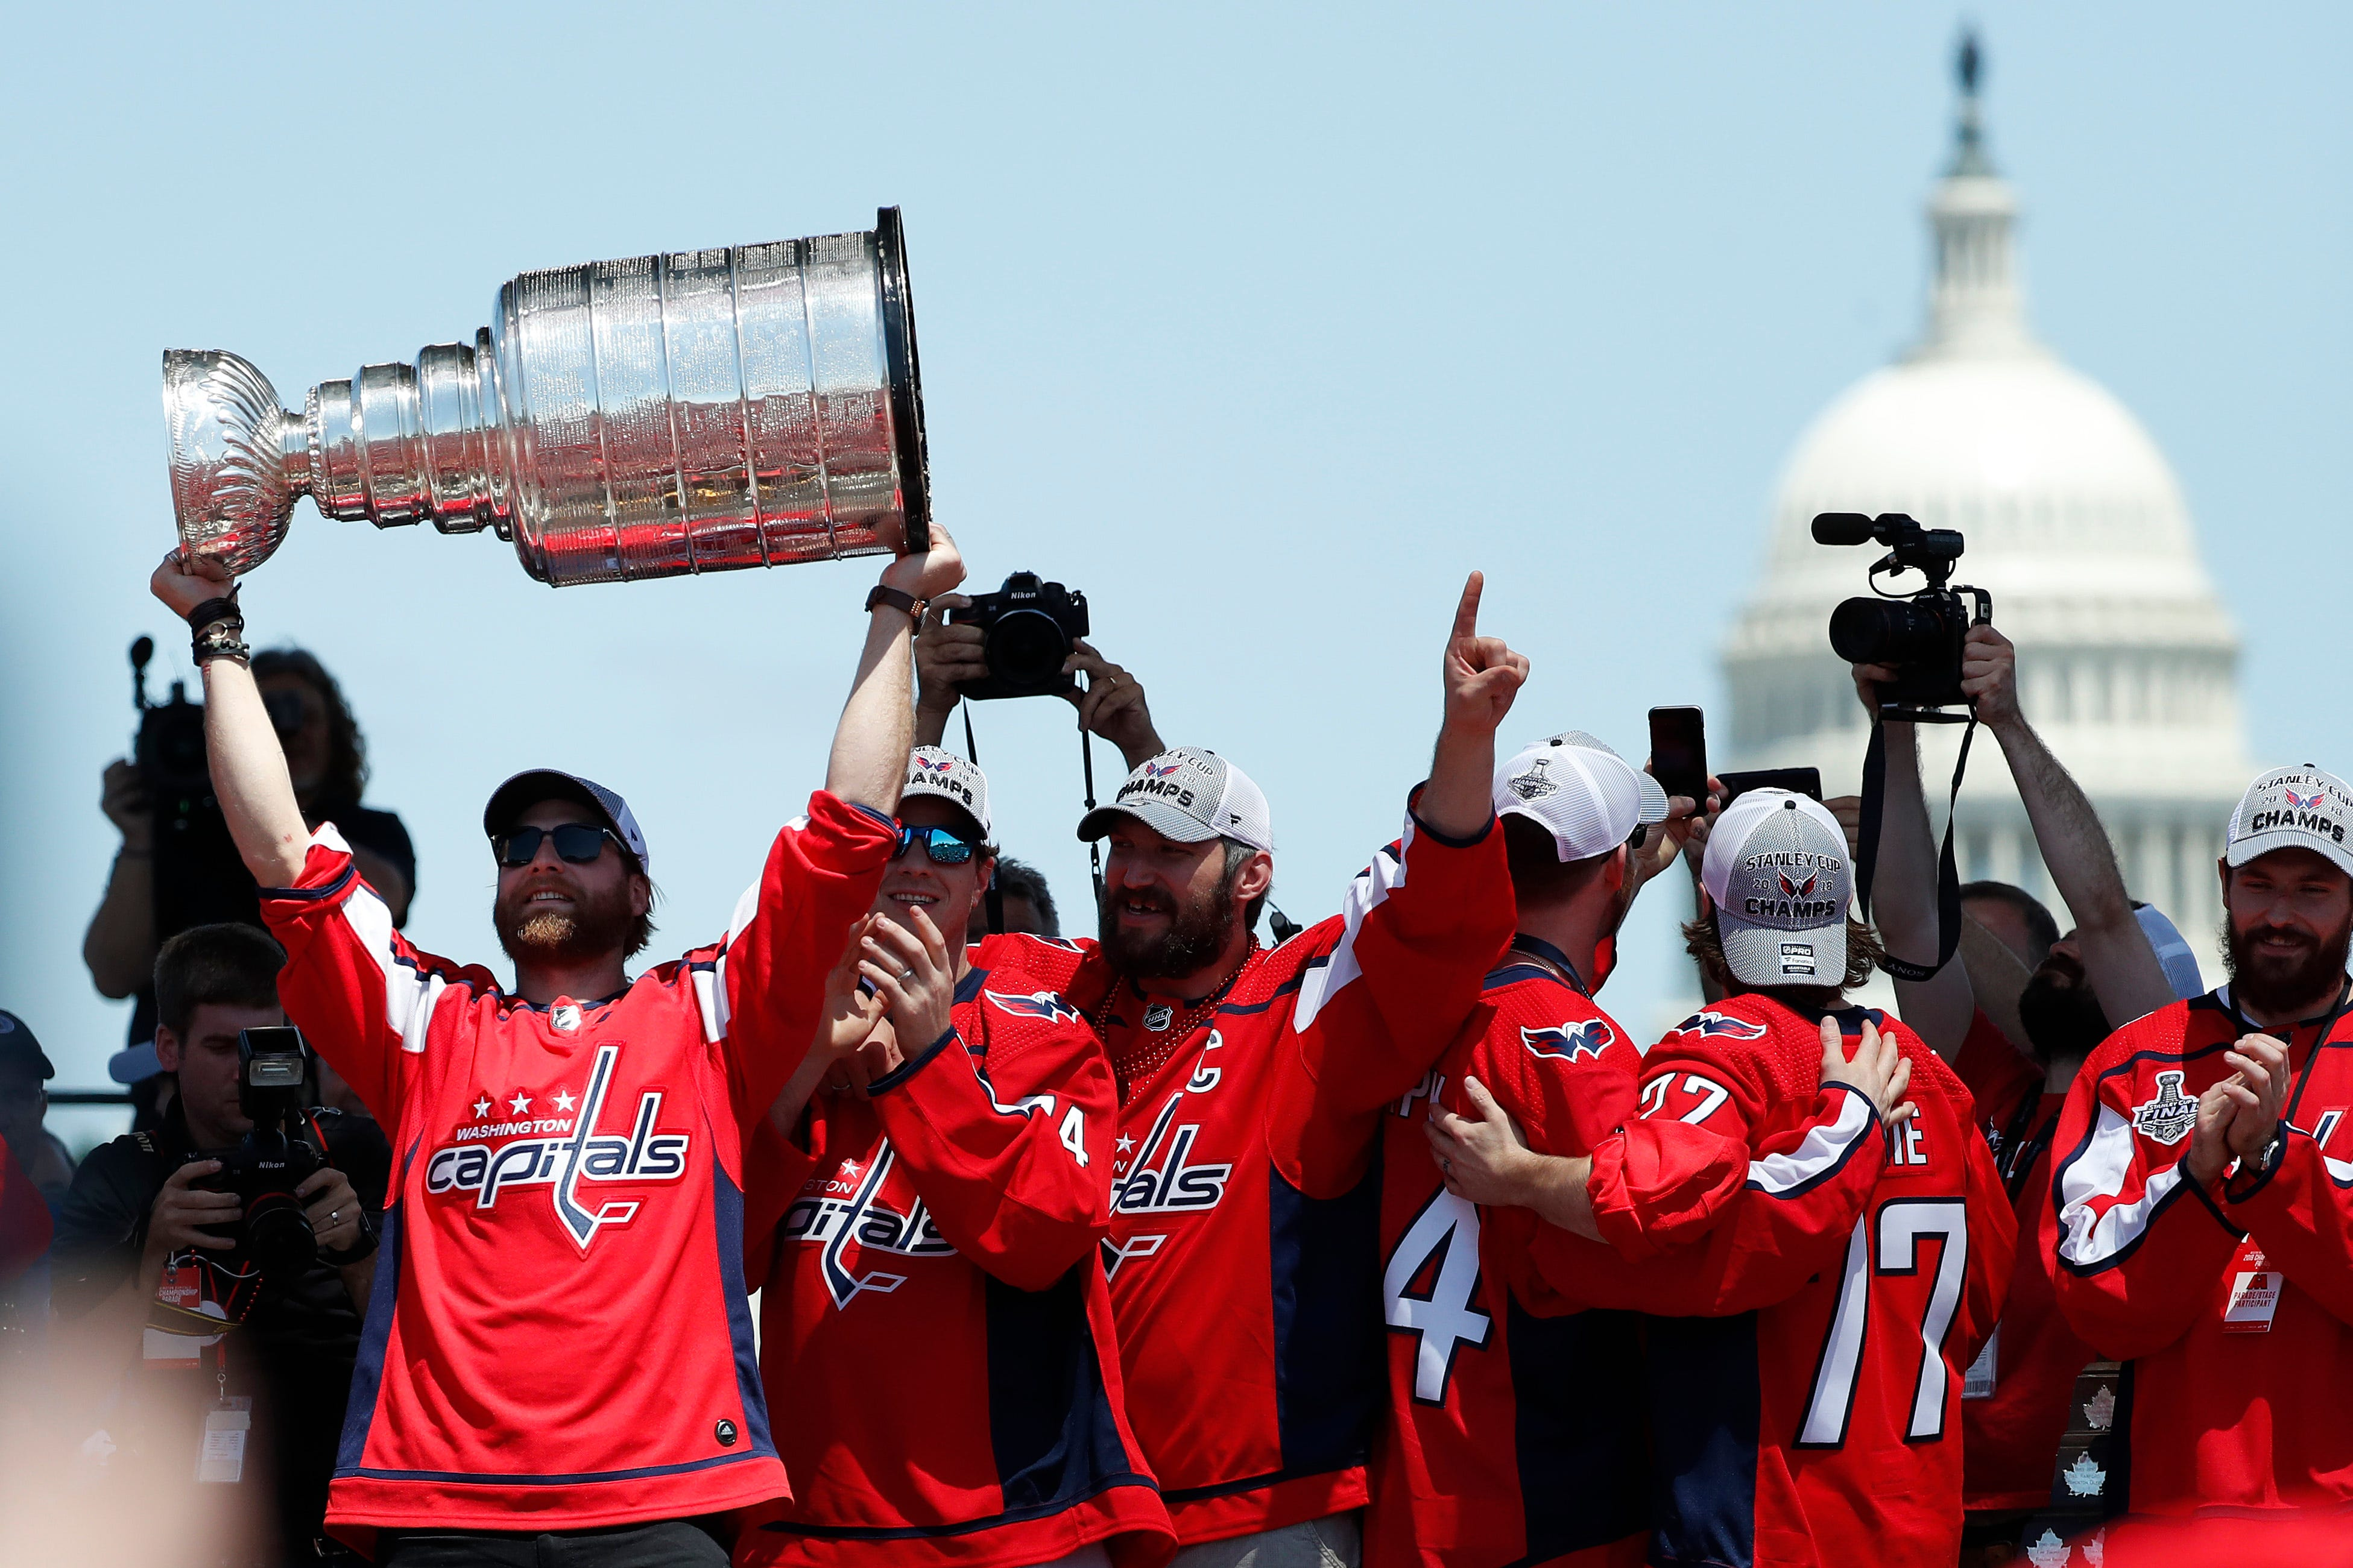 Most Capitals players looking forward to visiting White House, if invited